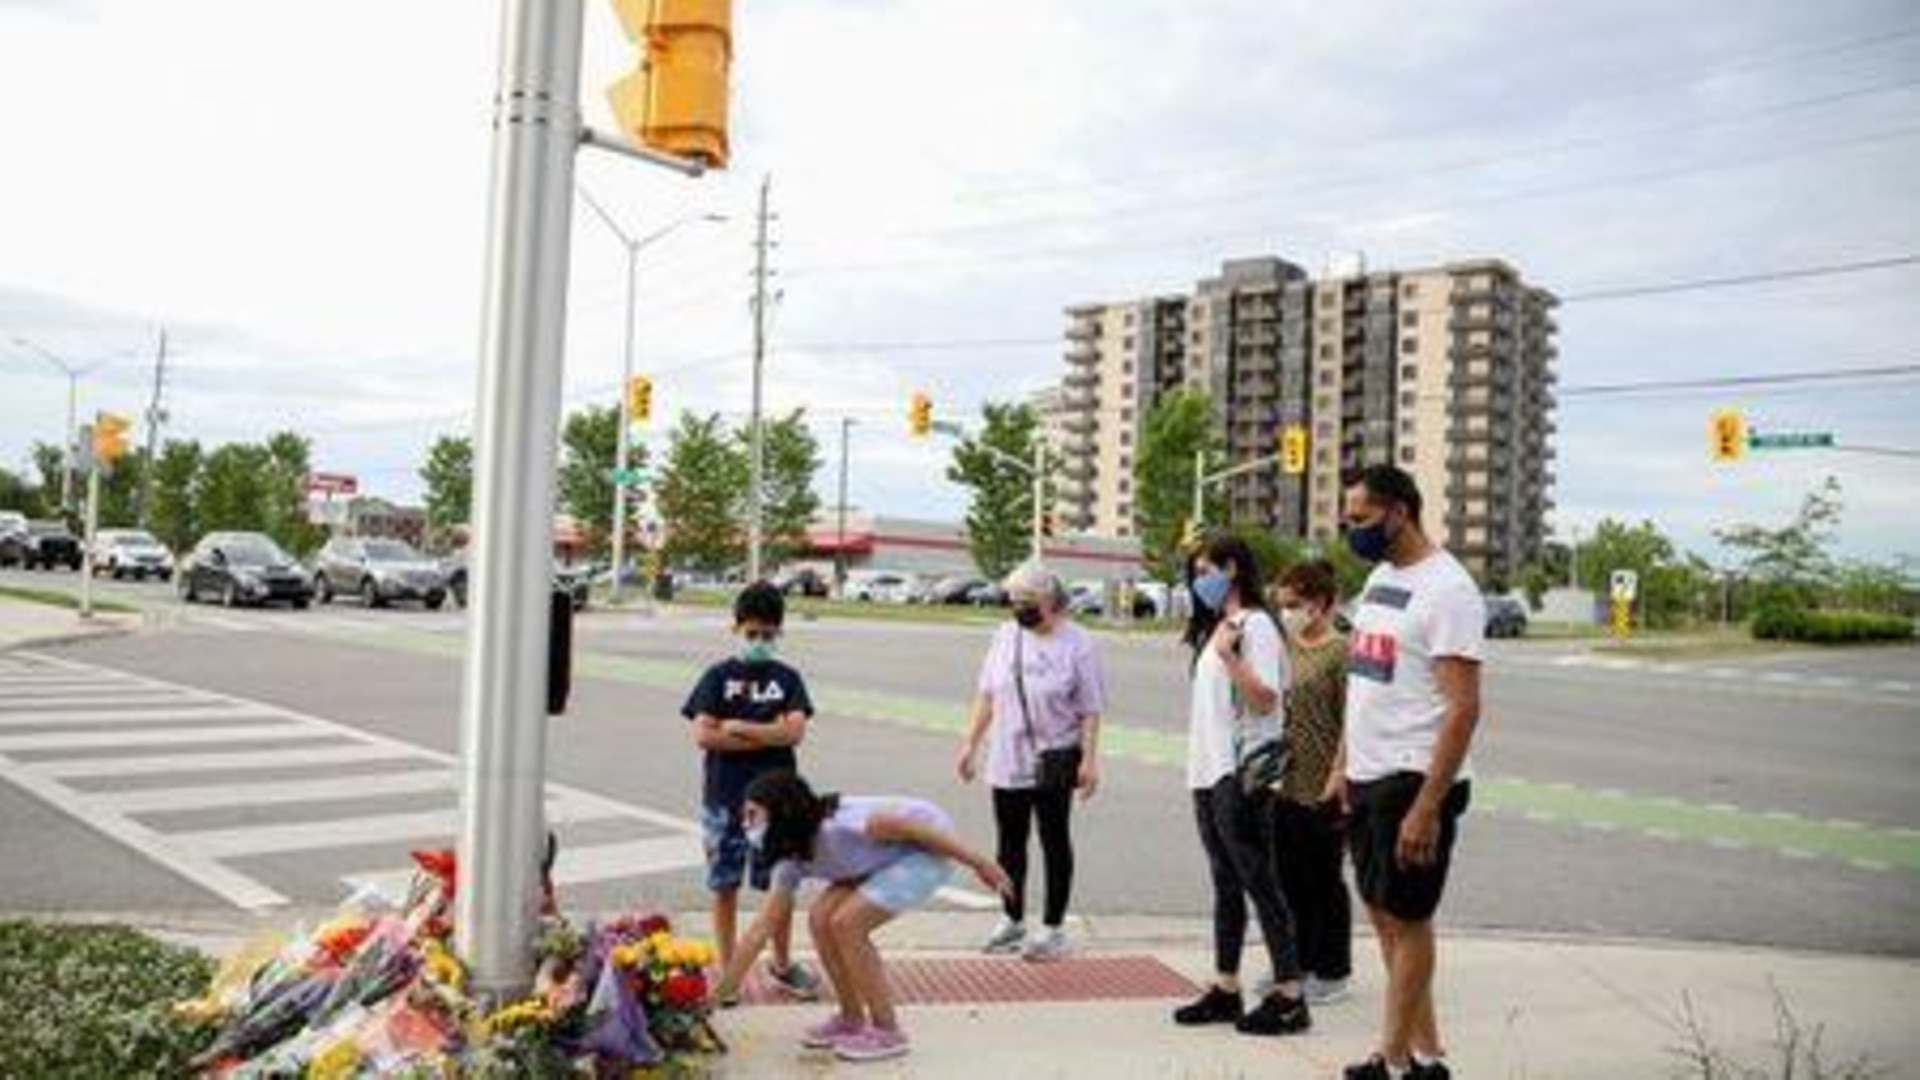 Killing of Canadian Muslim family with truck was hate crime, police say -  SWI swissinfo.ch